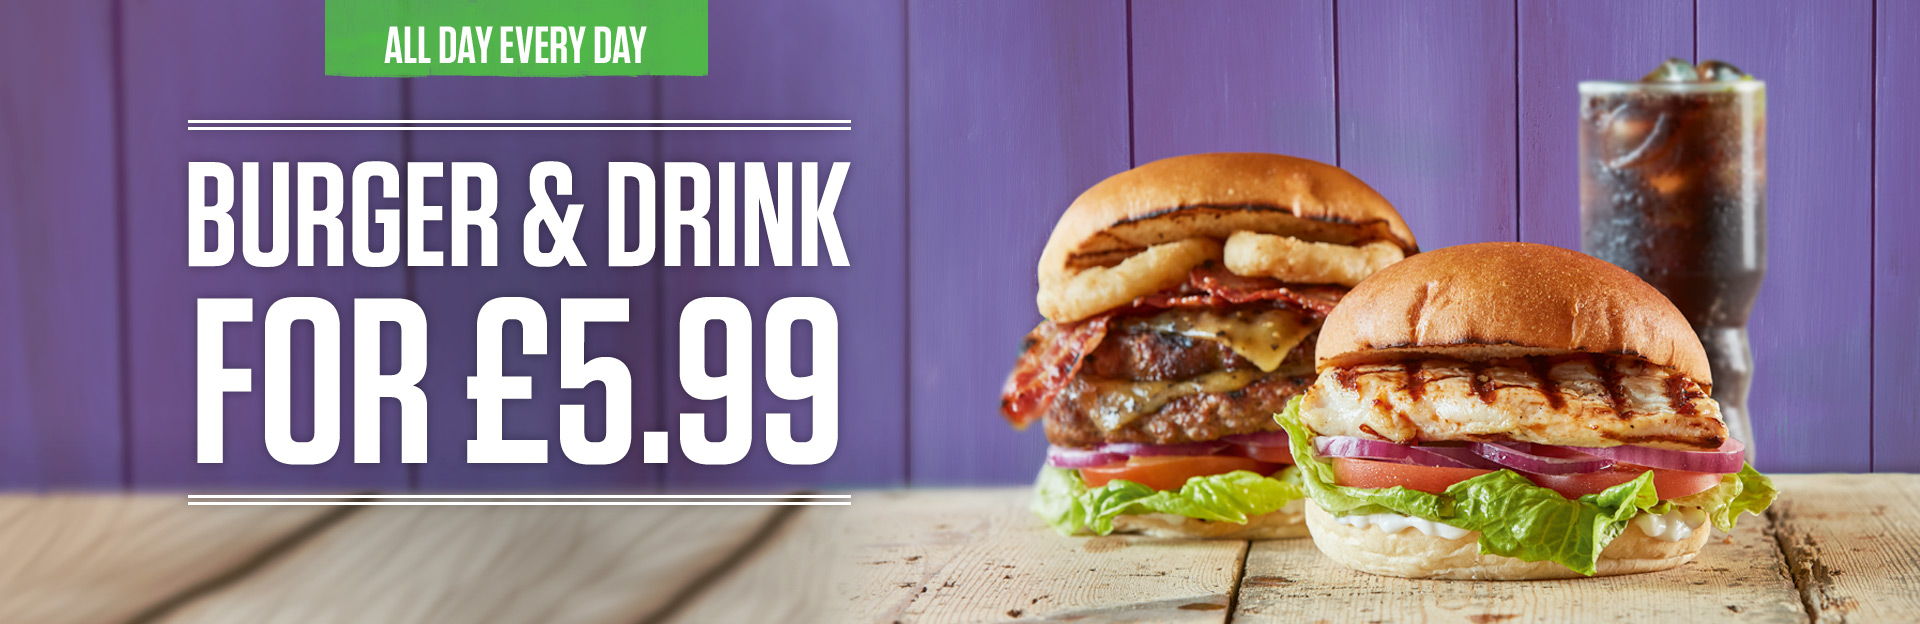 Burger and Drink Deal at The Black Bull